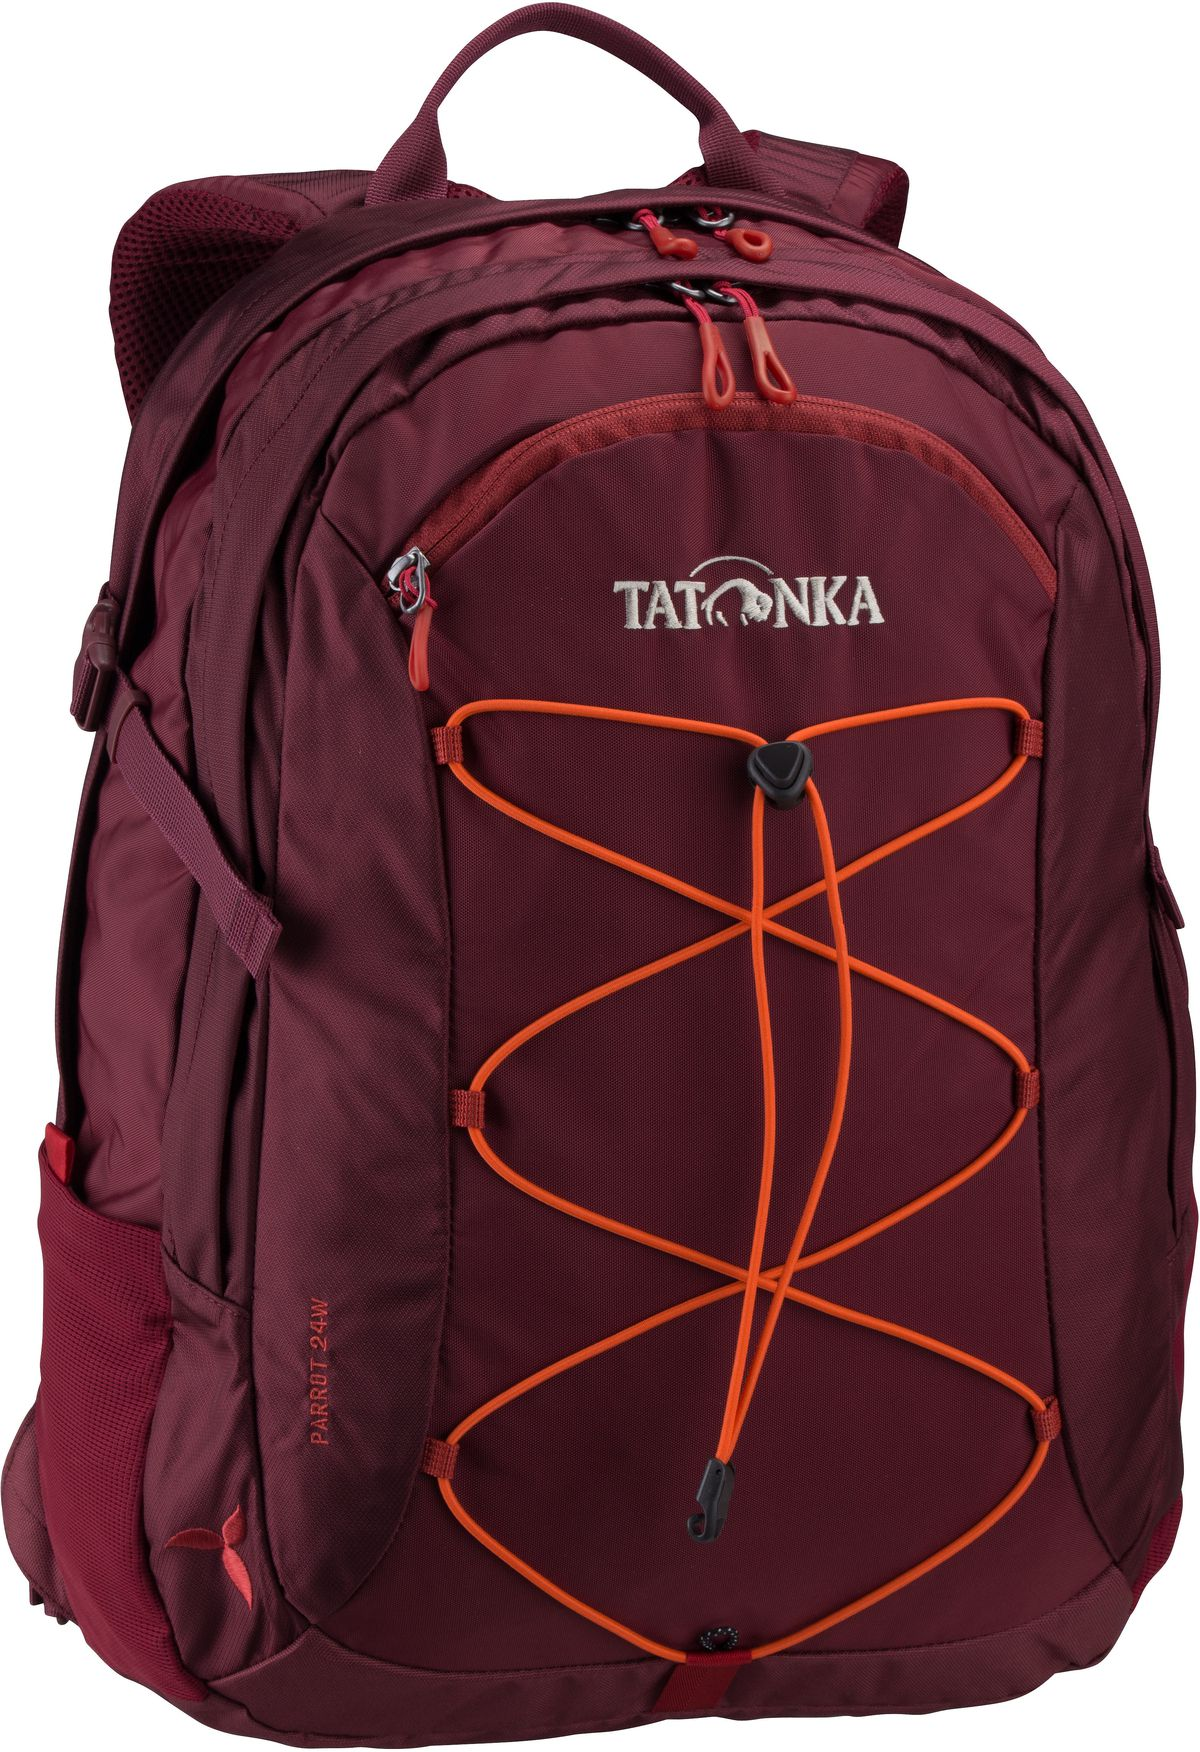 Laptoprucksack Parrot 24 Woman Bordeaux Red (24 Liter)